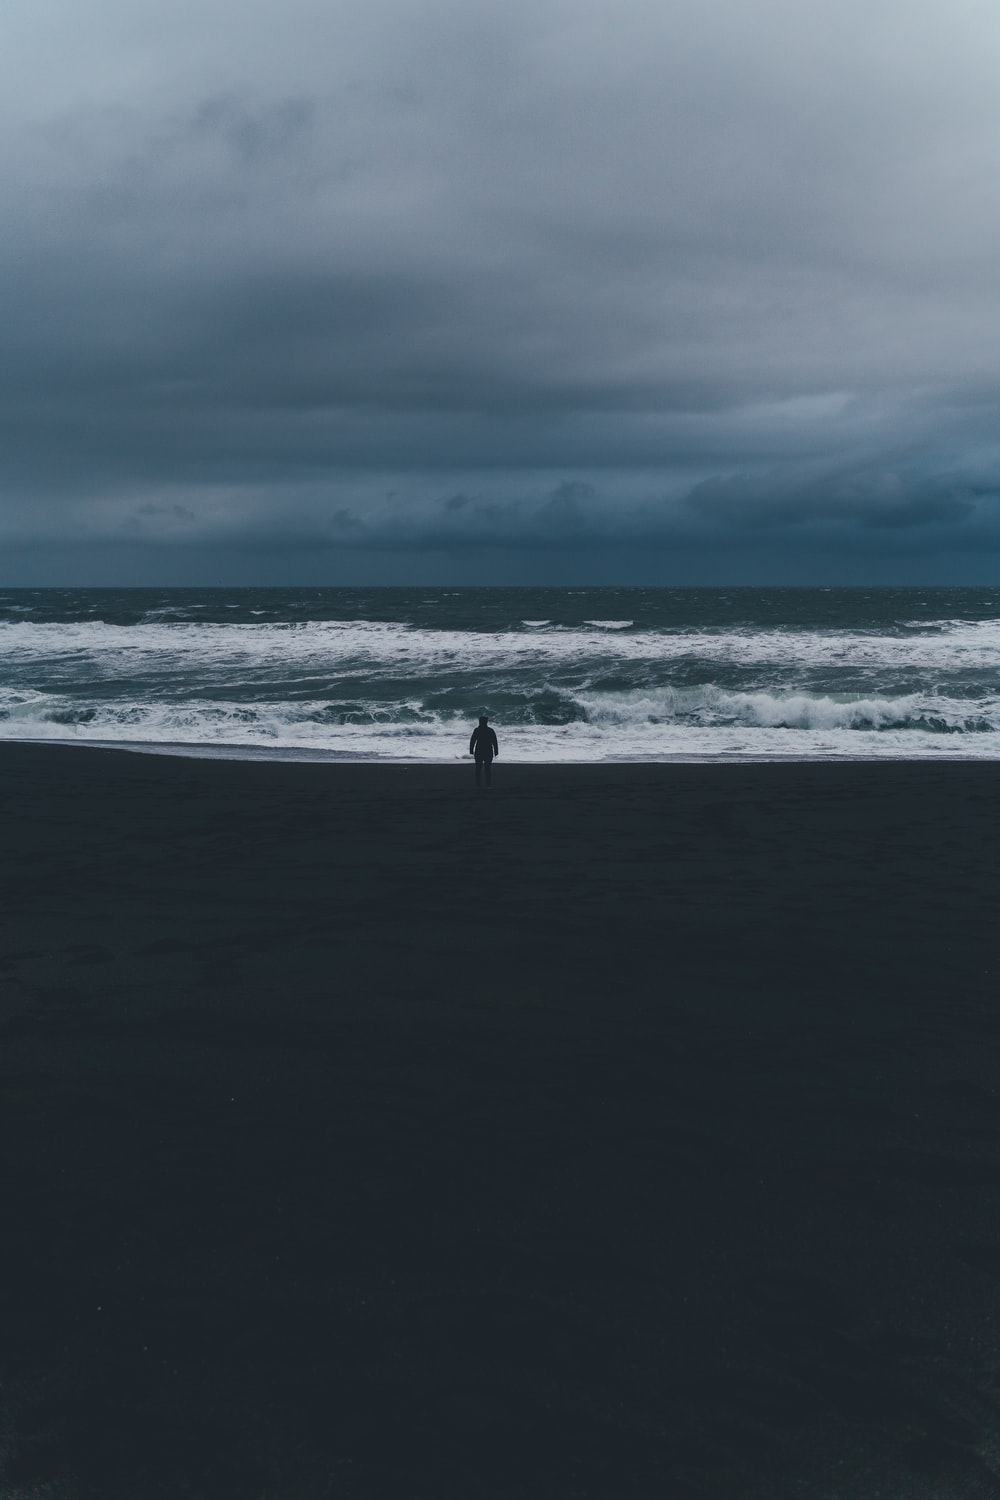 person standing on shore under cloudy sky